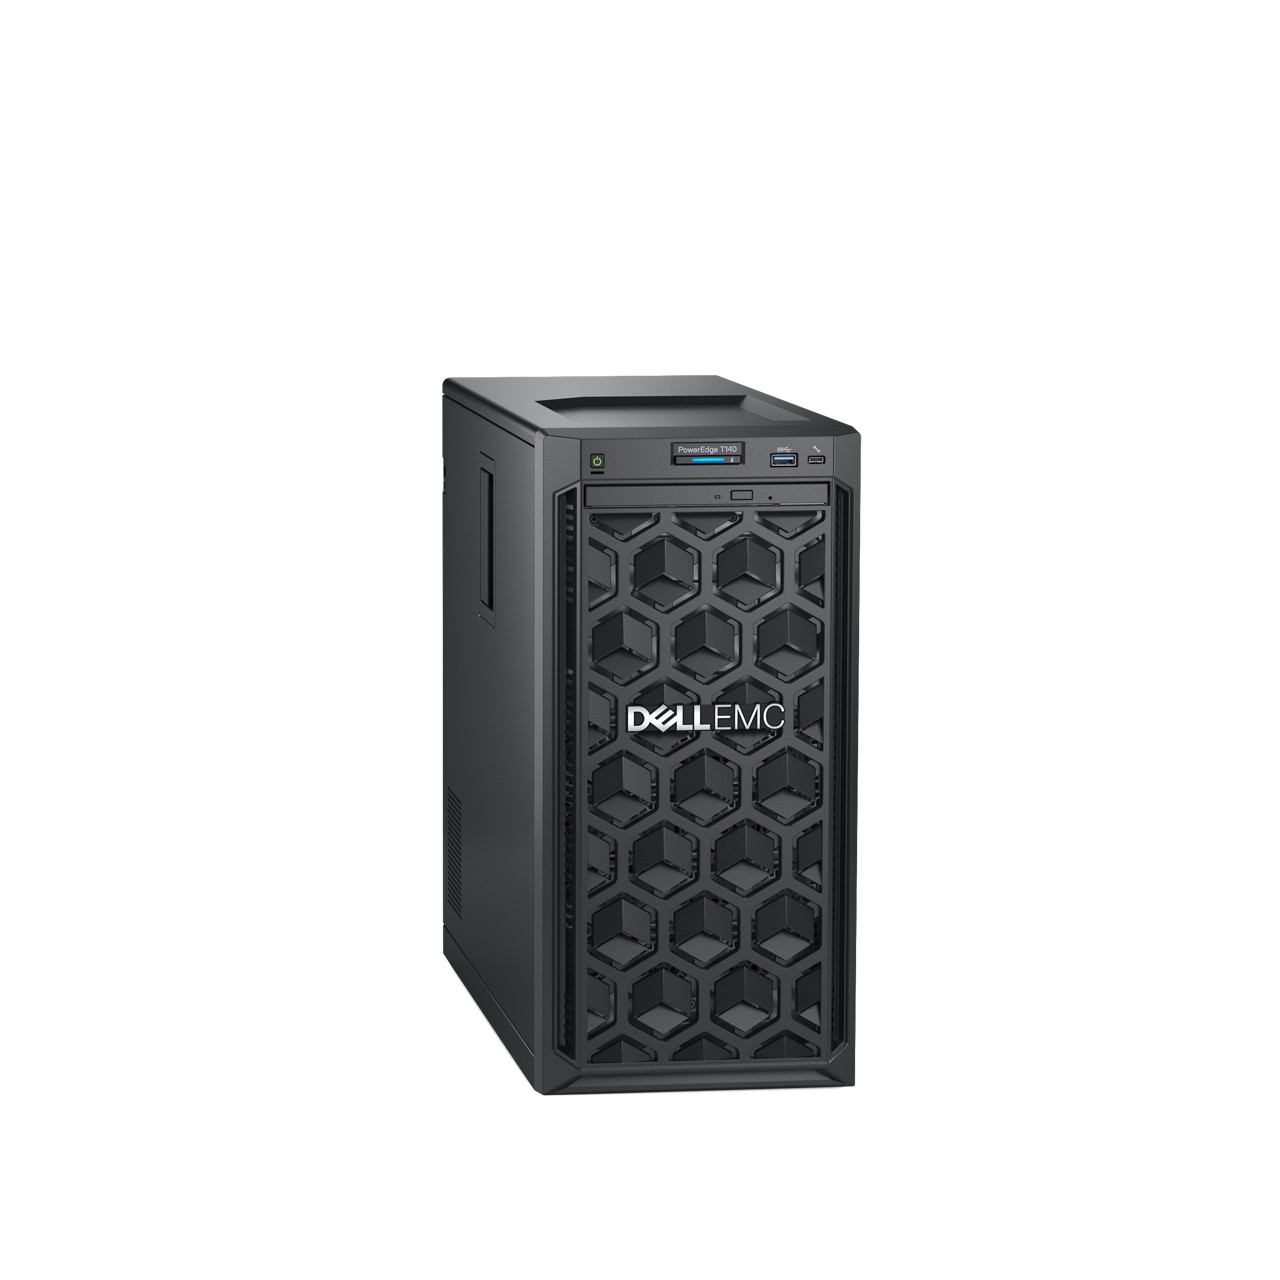 "DELL T140 PET140M2 E-2124 1X8GB 2 X 1TB 3.5"" 3.5"" SATA 7.200 RPM 1X365W TOWER SERVER"